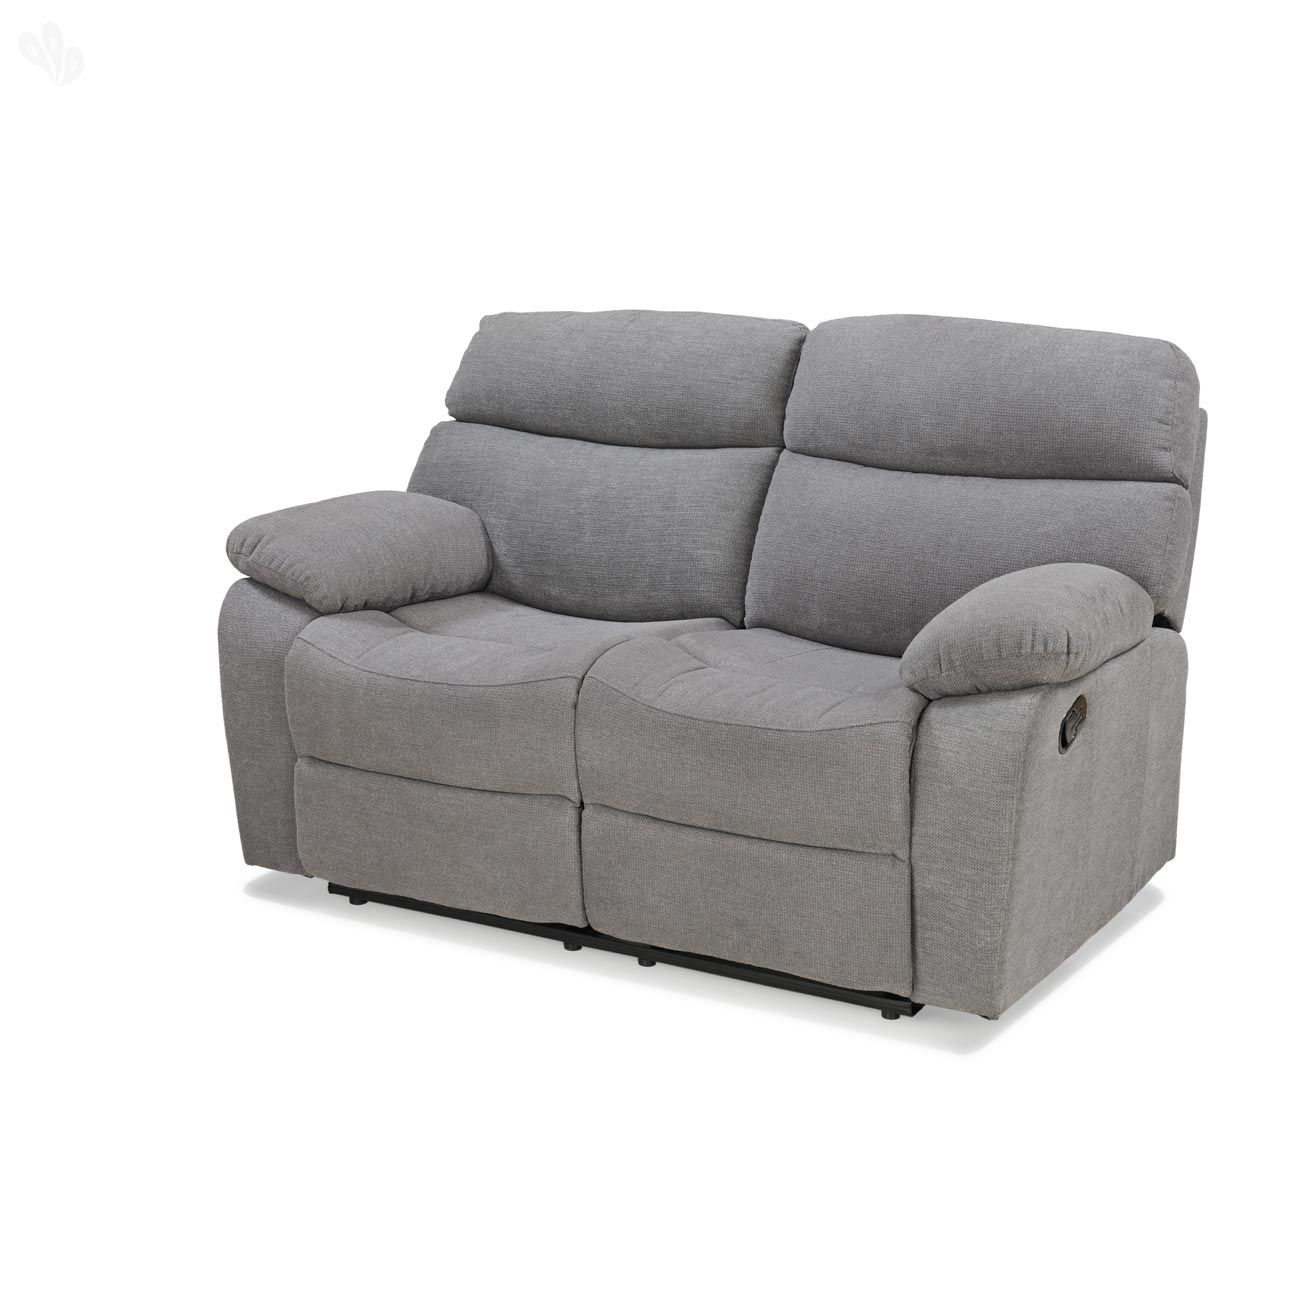 Story Affordable Furniture Brands: Buy RoyalOak Recliner Double Seater